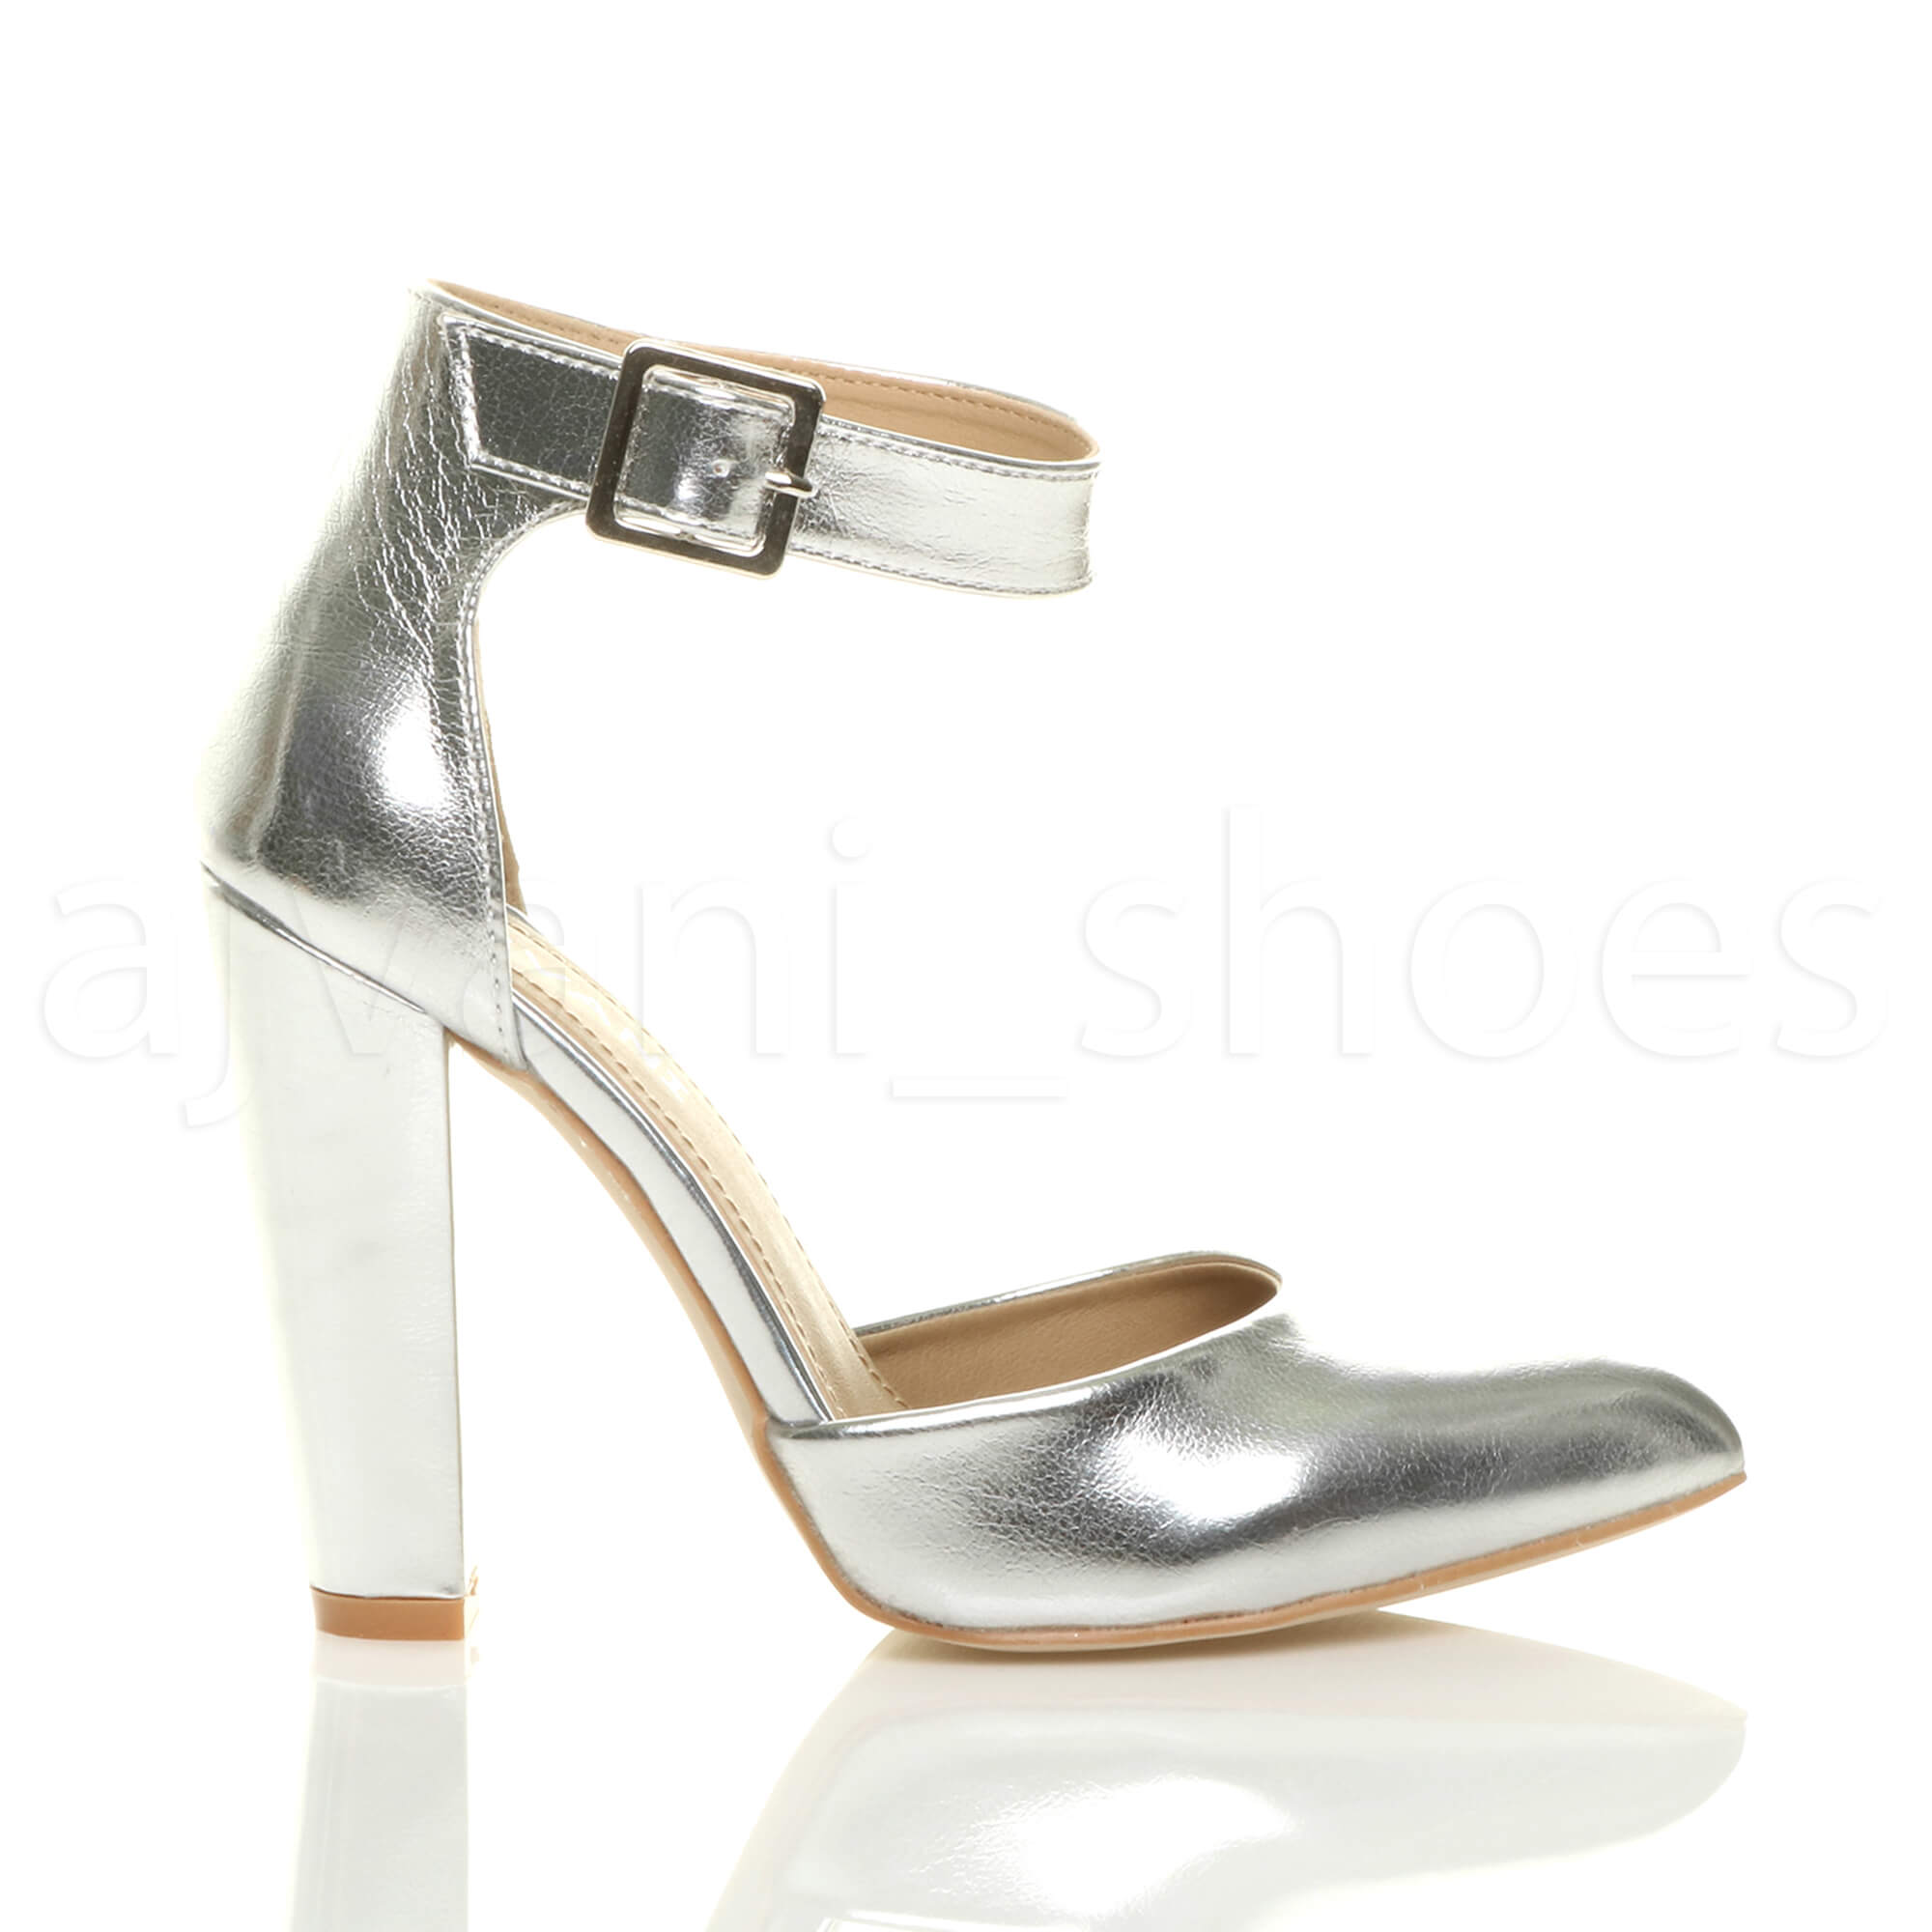 WOMENS-LADIES-HIGH-BLOCK-HEEL-ANKLE-STRAP-BUCKLE-POINTED-COURT-SHOES-SIZE thumbnail 115